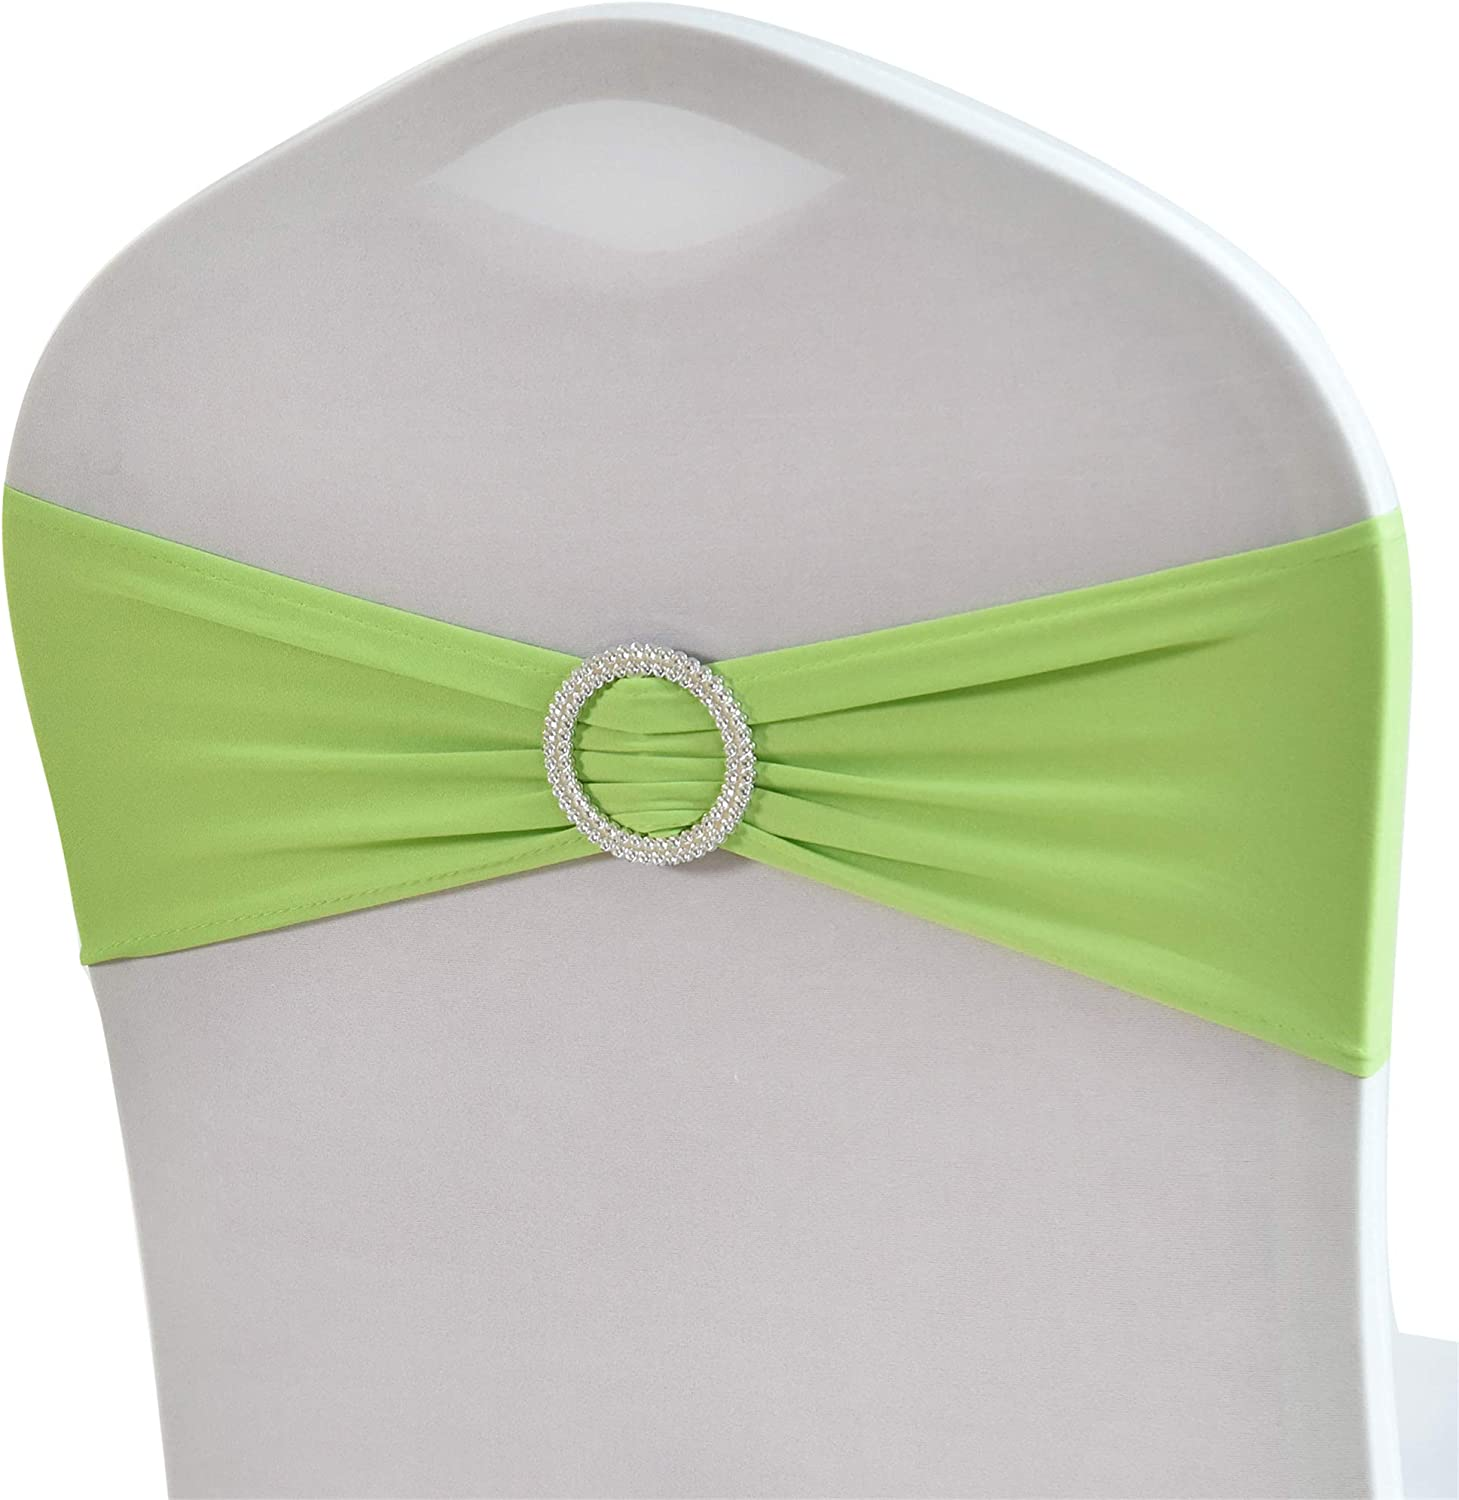 WEBEE Apple Green Spandex Chair Bands Elastic Chair Sashes with Buckle- 50 PCS Wedding Banquet Party Hotel Event Decoration Chair Bows Ties (Apple Green, 50 PCS)